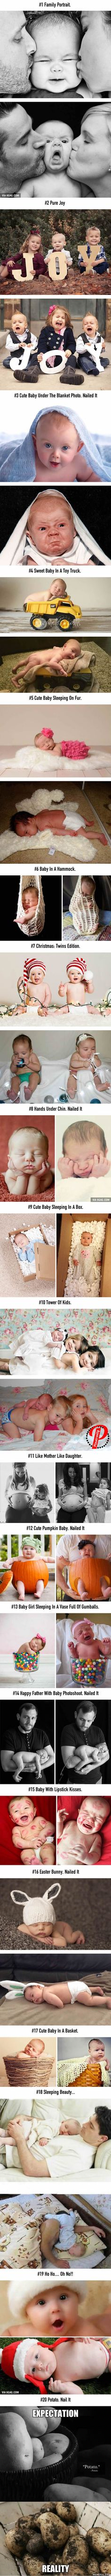 20 Hilarious Baby Photoshoot Fails - 9GAG